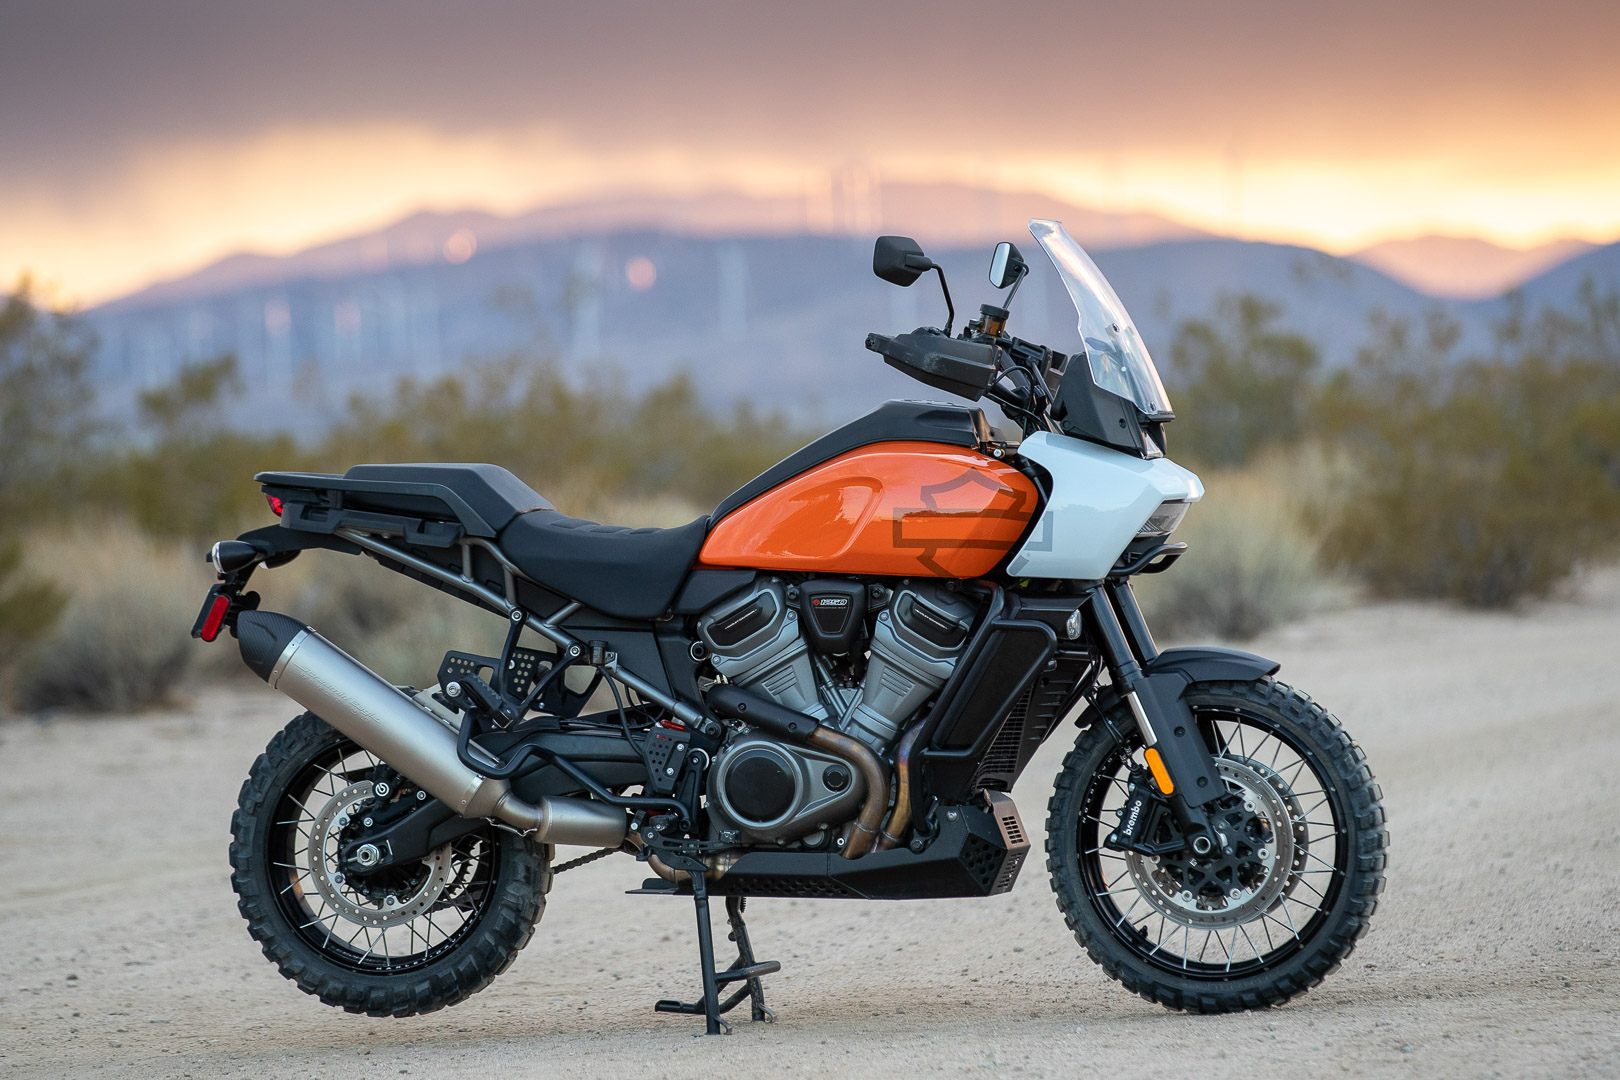 2021 Harley-Davidson Pan America Special Review (24 Fast Facts)